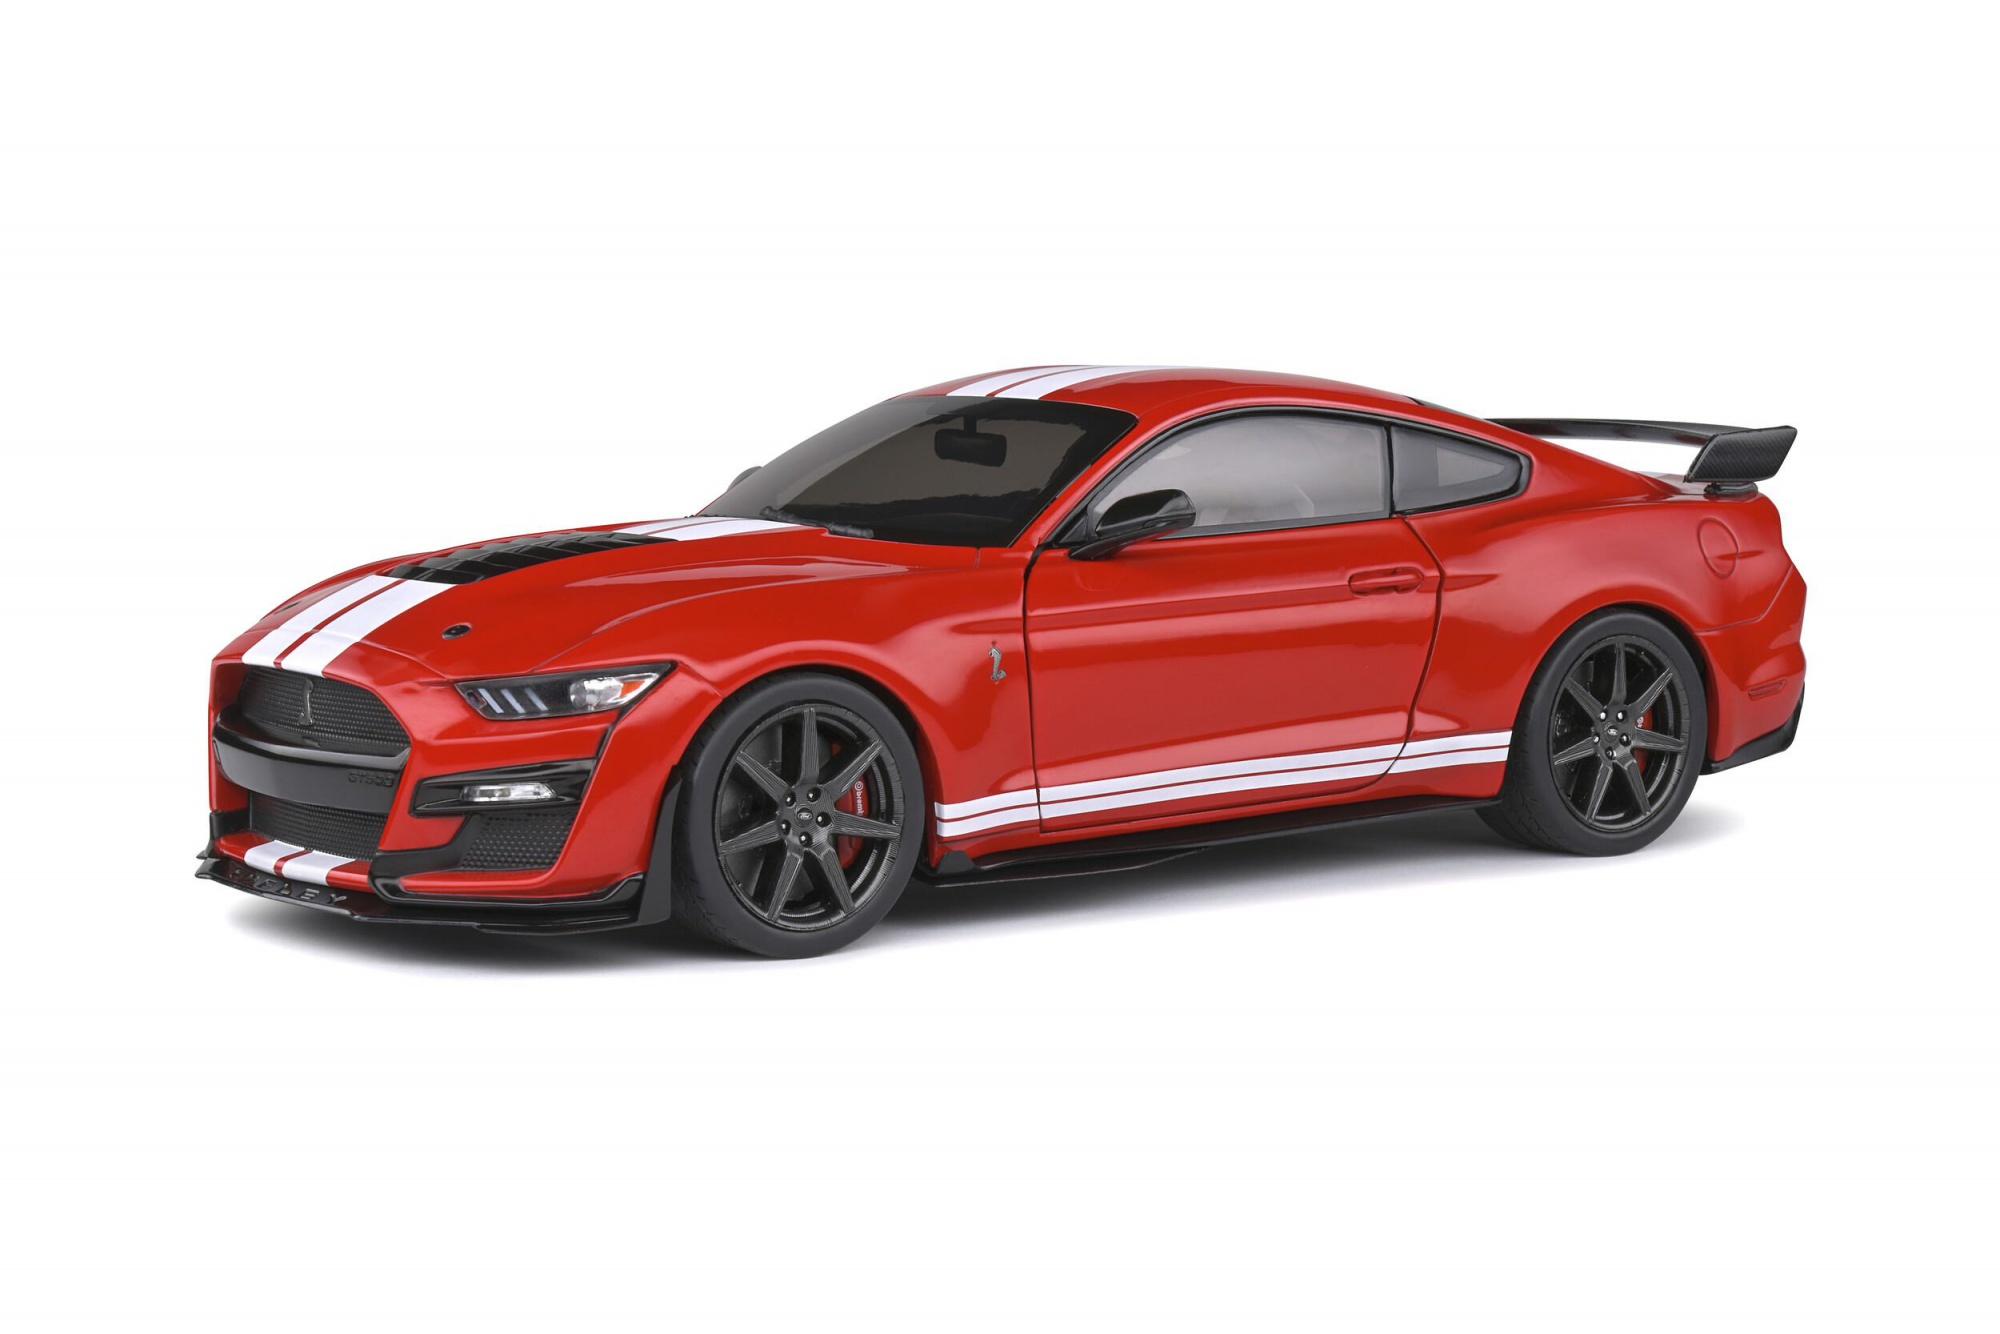 Ford Mustang GT500 FAST TRACK Racing Red 2020